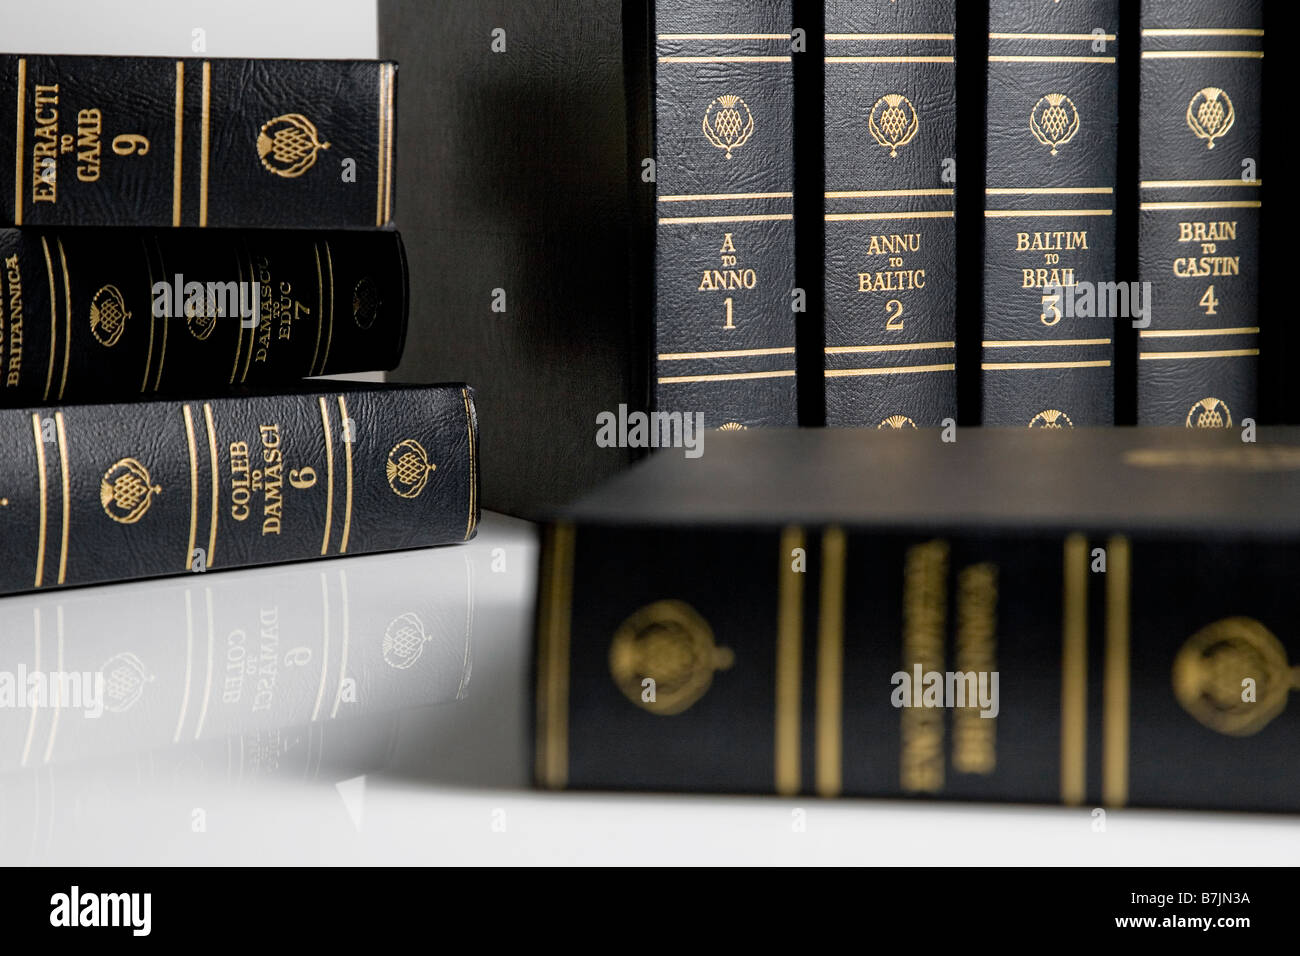 A number of encyclopaedia on a white background - Stock Image